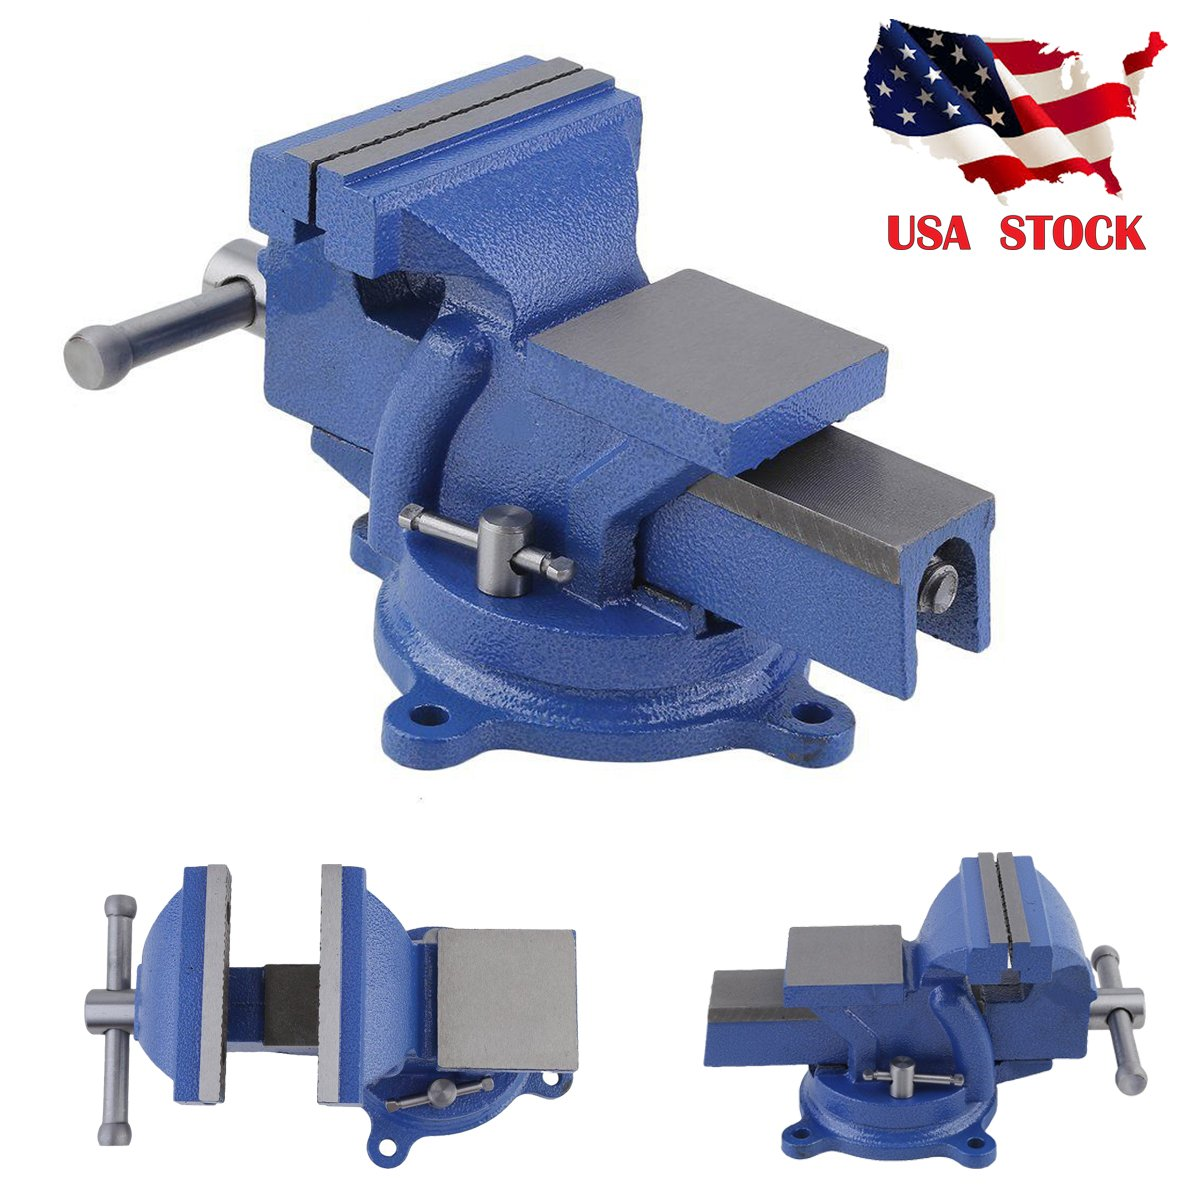 Godung Bench Vice Clamp (5'') Vise Table Work Engineer Jew Heavy Duty Craft Repair Swivel Base